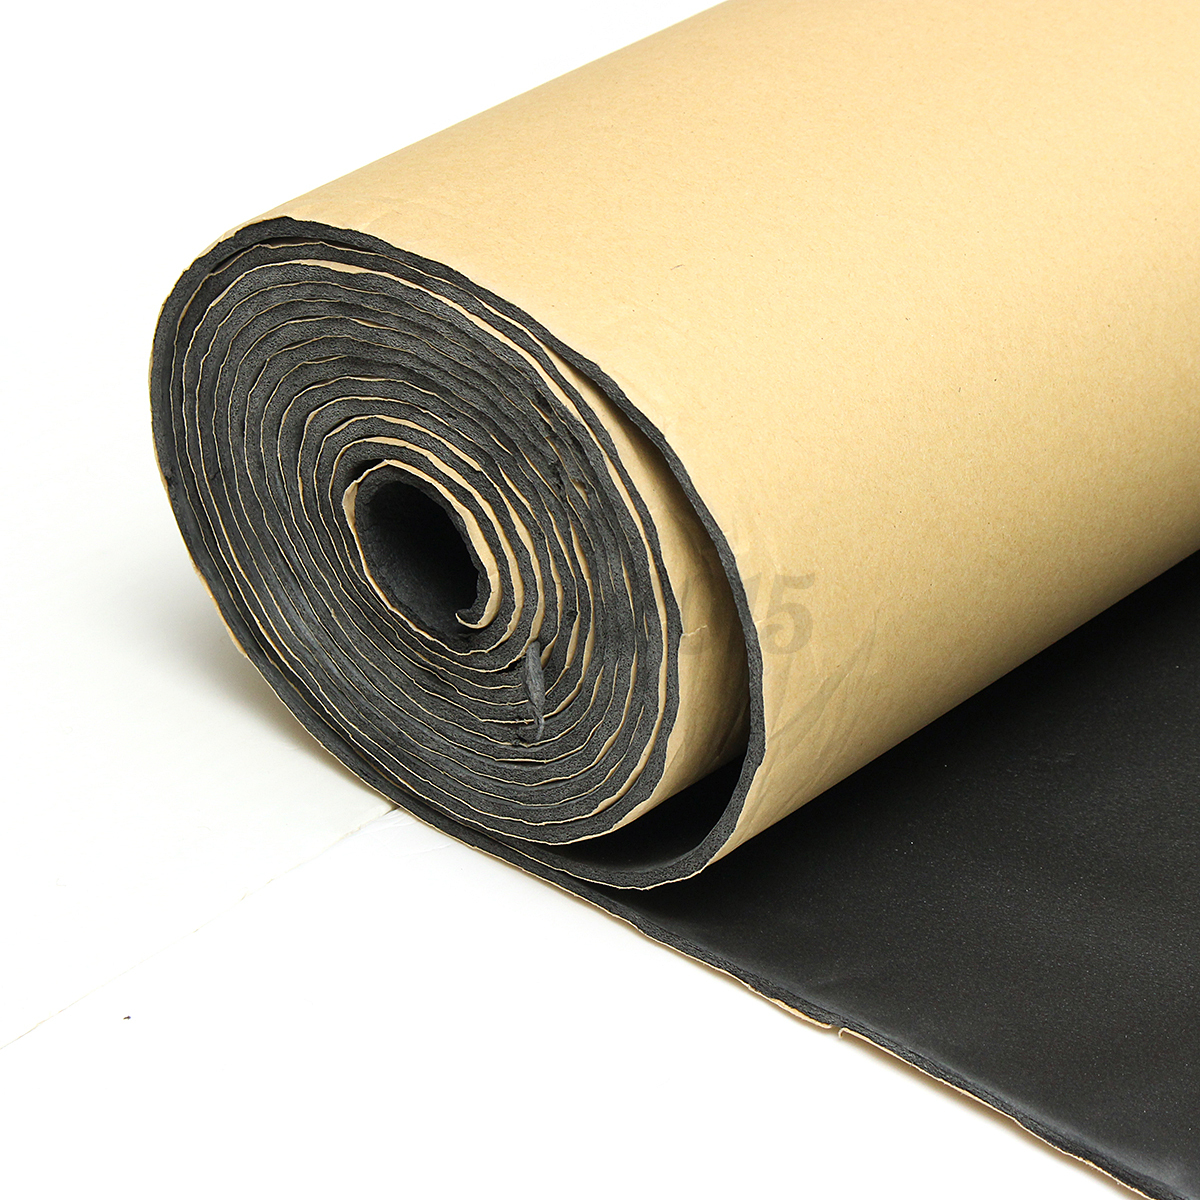 Acoustic Foam Insulation : Mm mx m car sound proofing deadening insulation closed